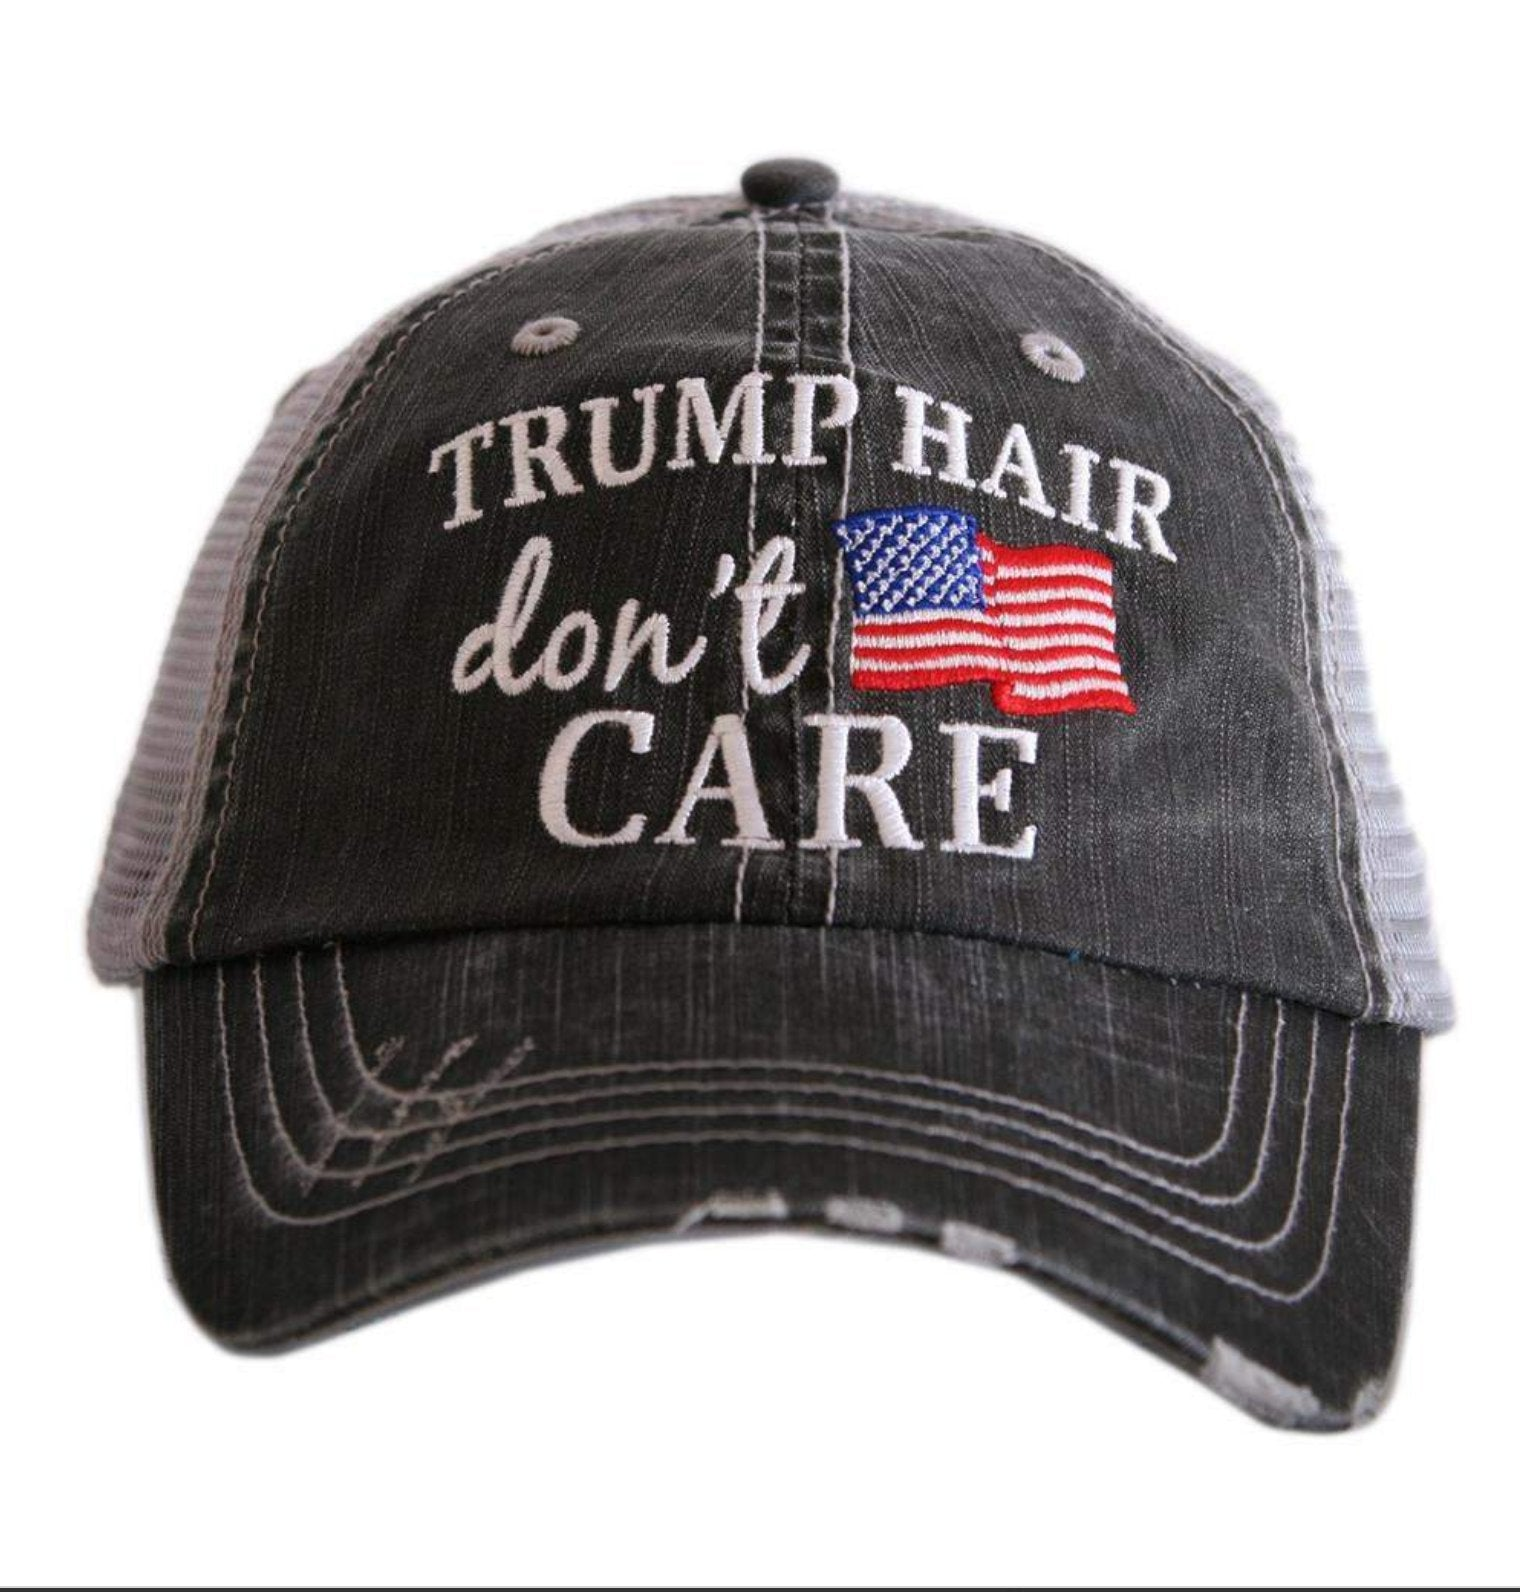 TRUMP HAIR DONT CARE TRUCKER HAT - KDC-TC-195 - Molly's! A Chic and Unique Boutique